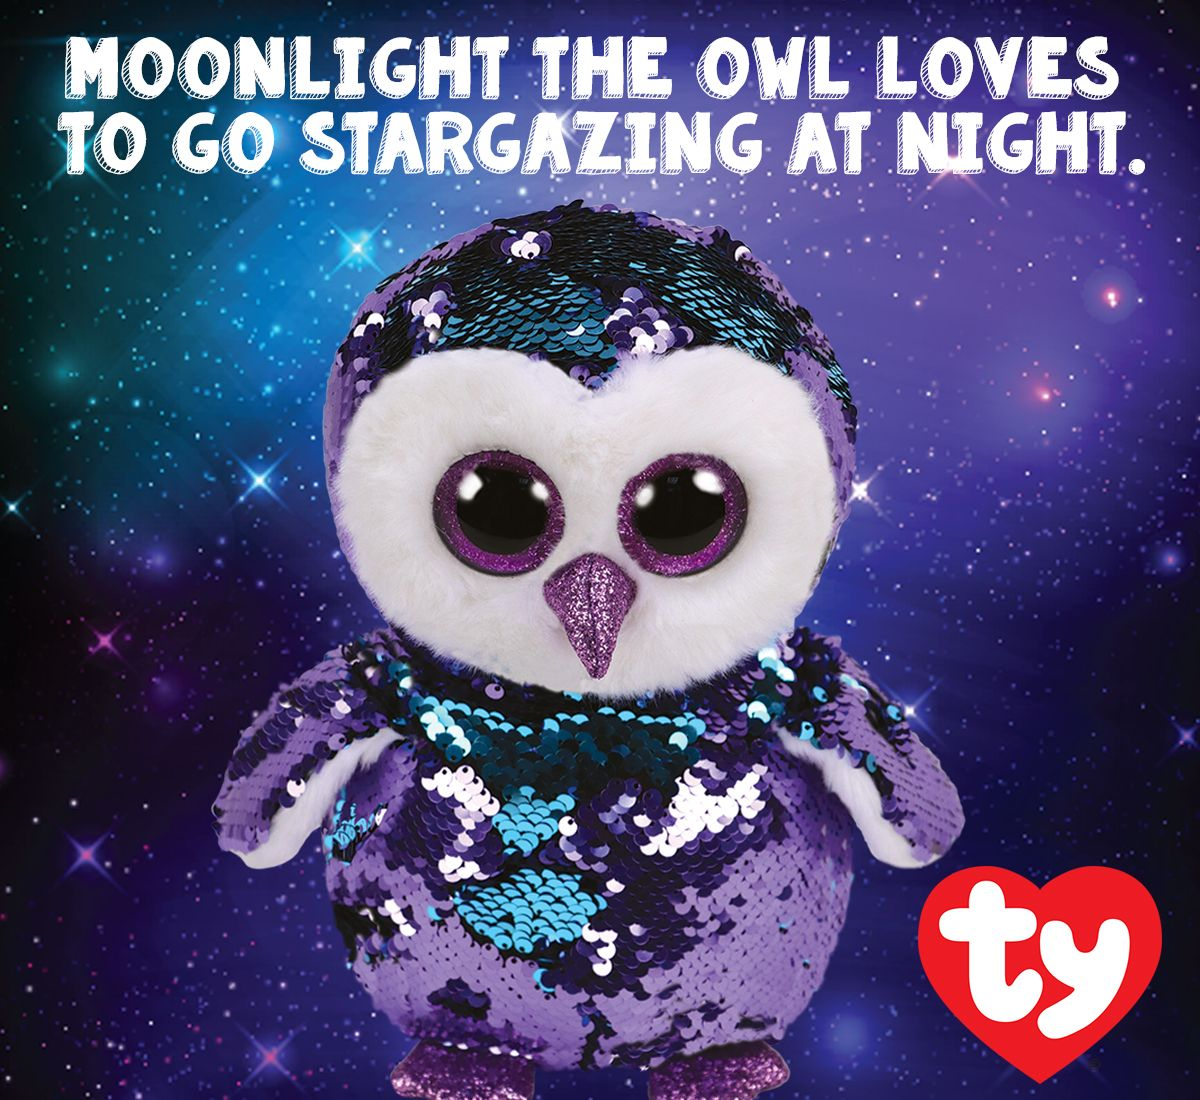 e1ceffc1e Ty Flippable, Moonlight the owl loves to go stargazing at night. Ty ...